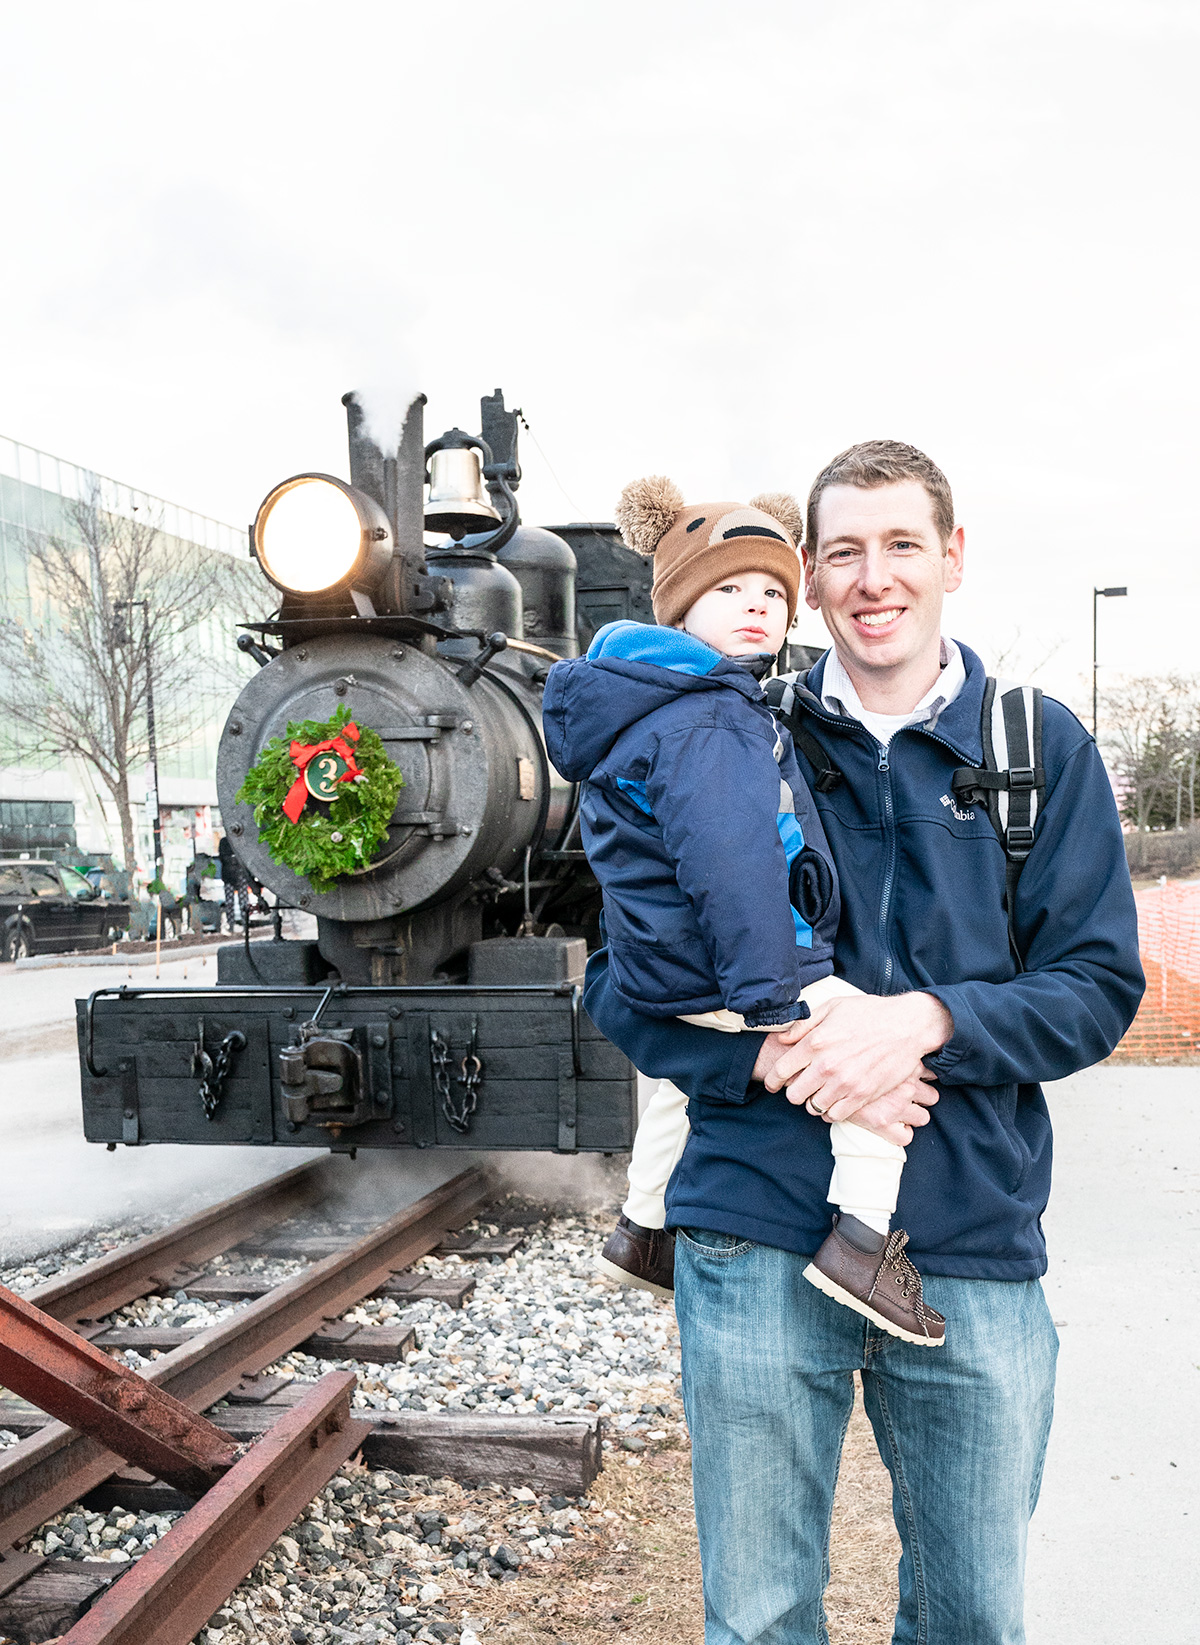 Trevor-at-Polar-Express-Portland